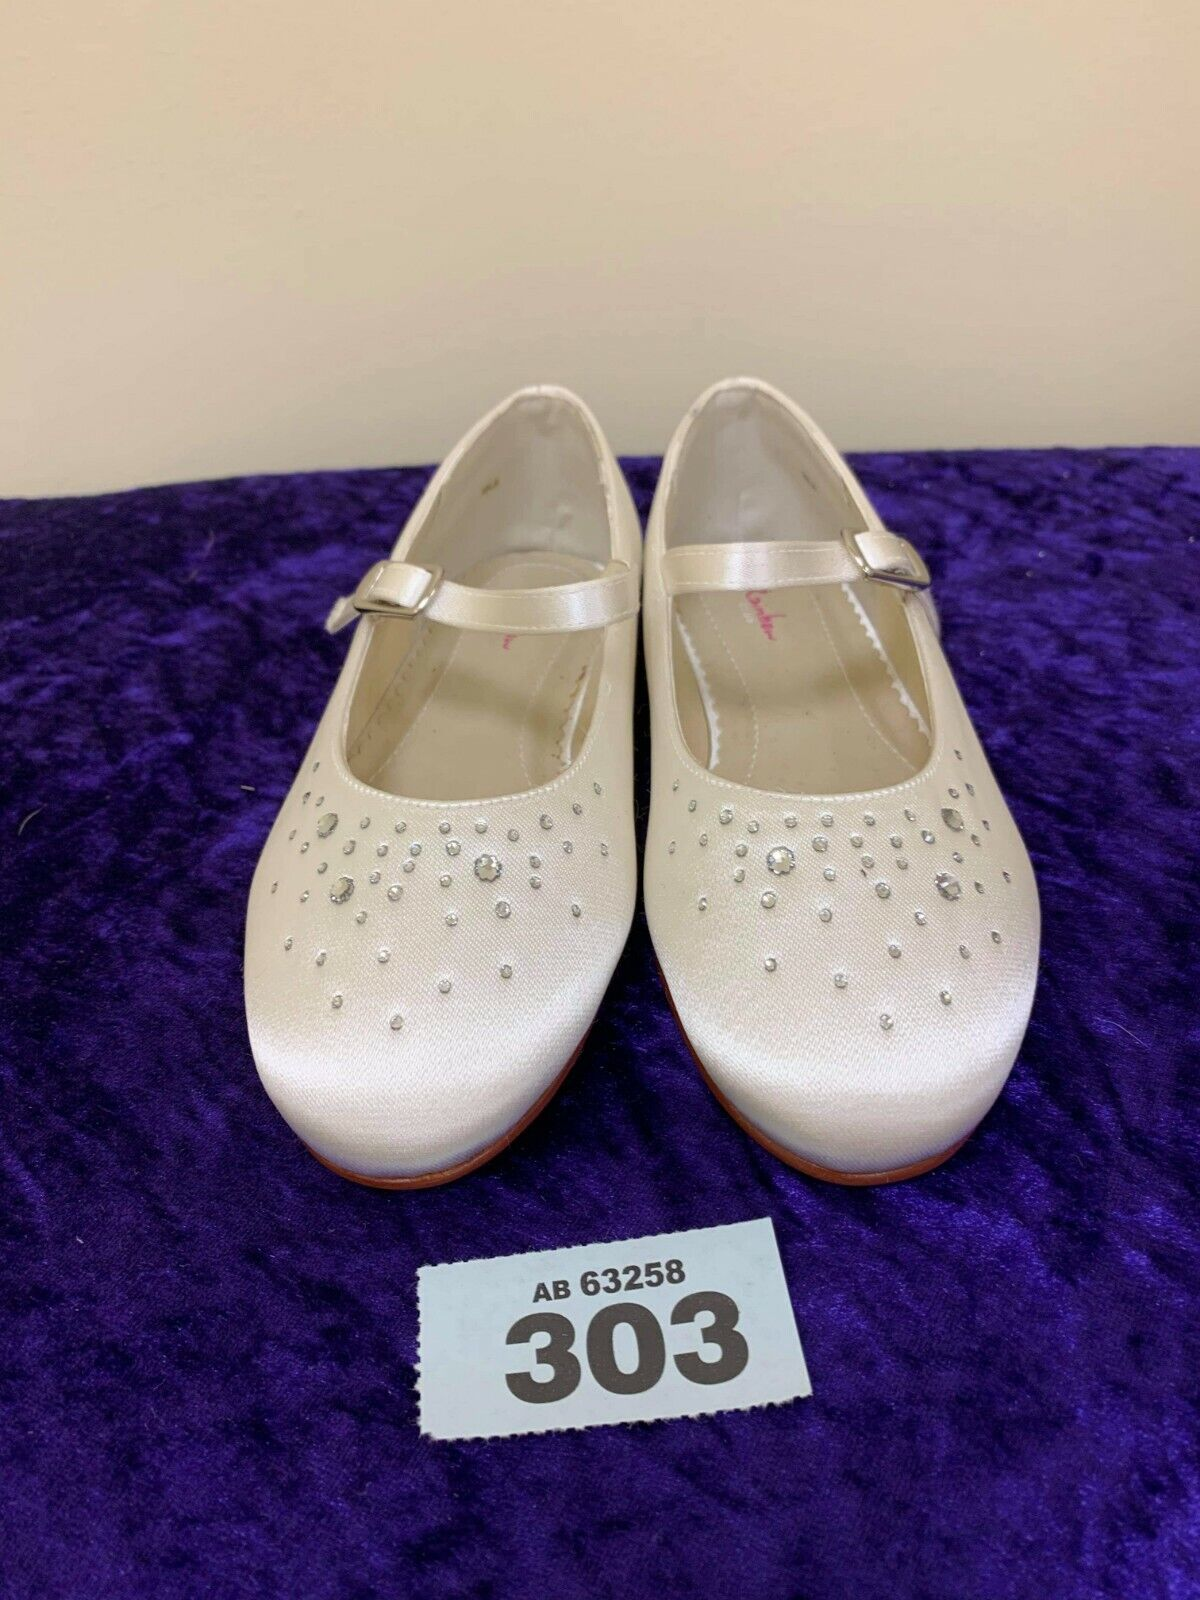 New in box Rainbow Club Childs Shoes size 11 wedding ivory shoes Code 303